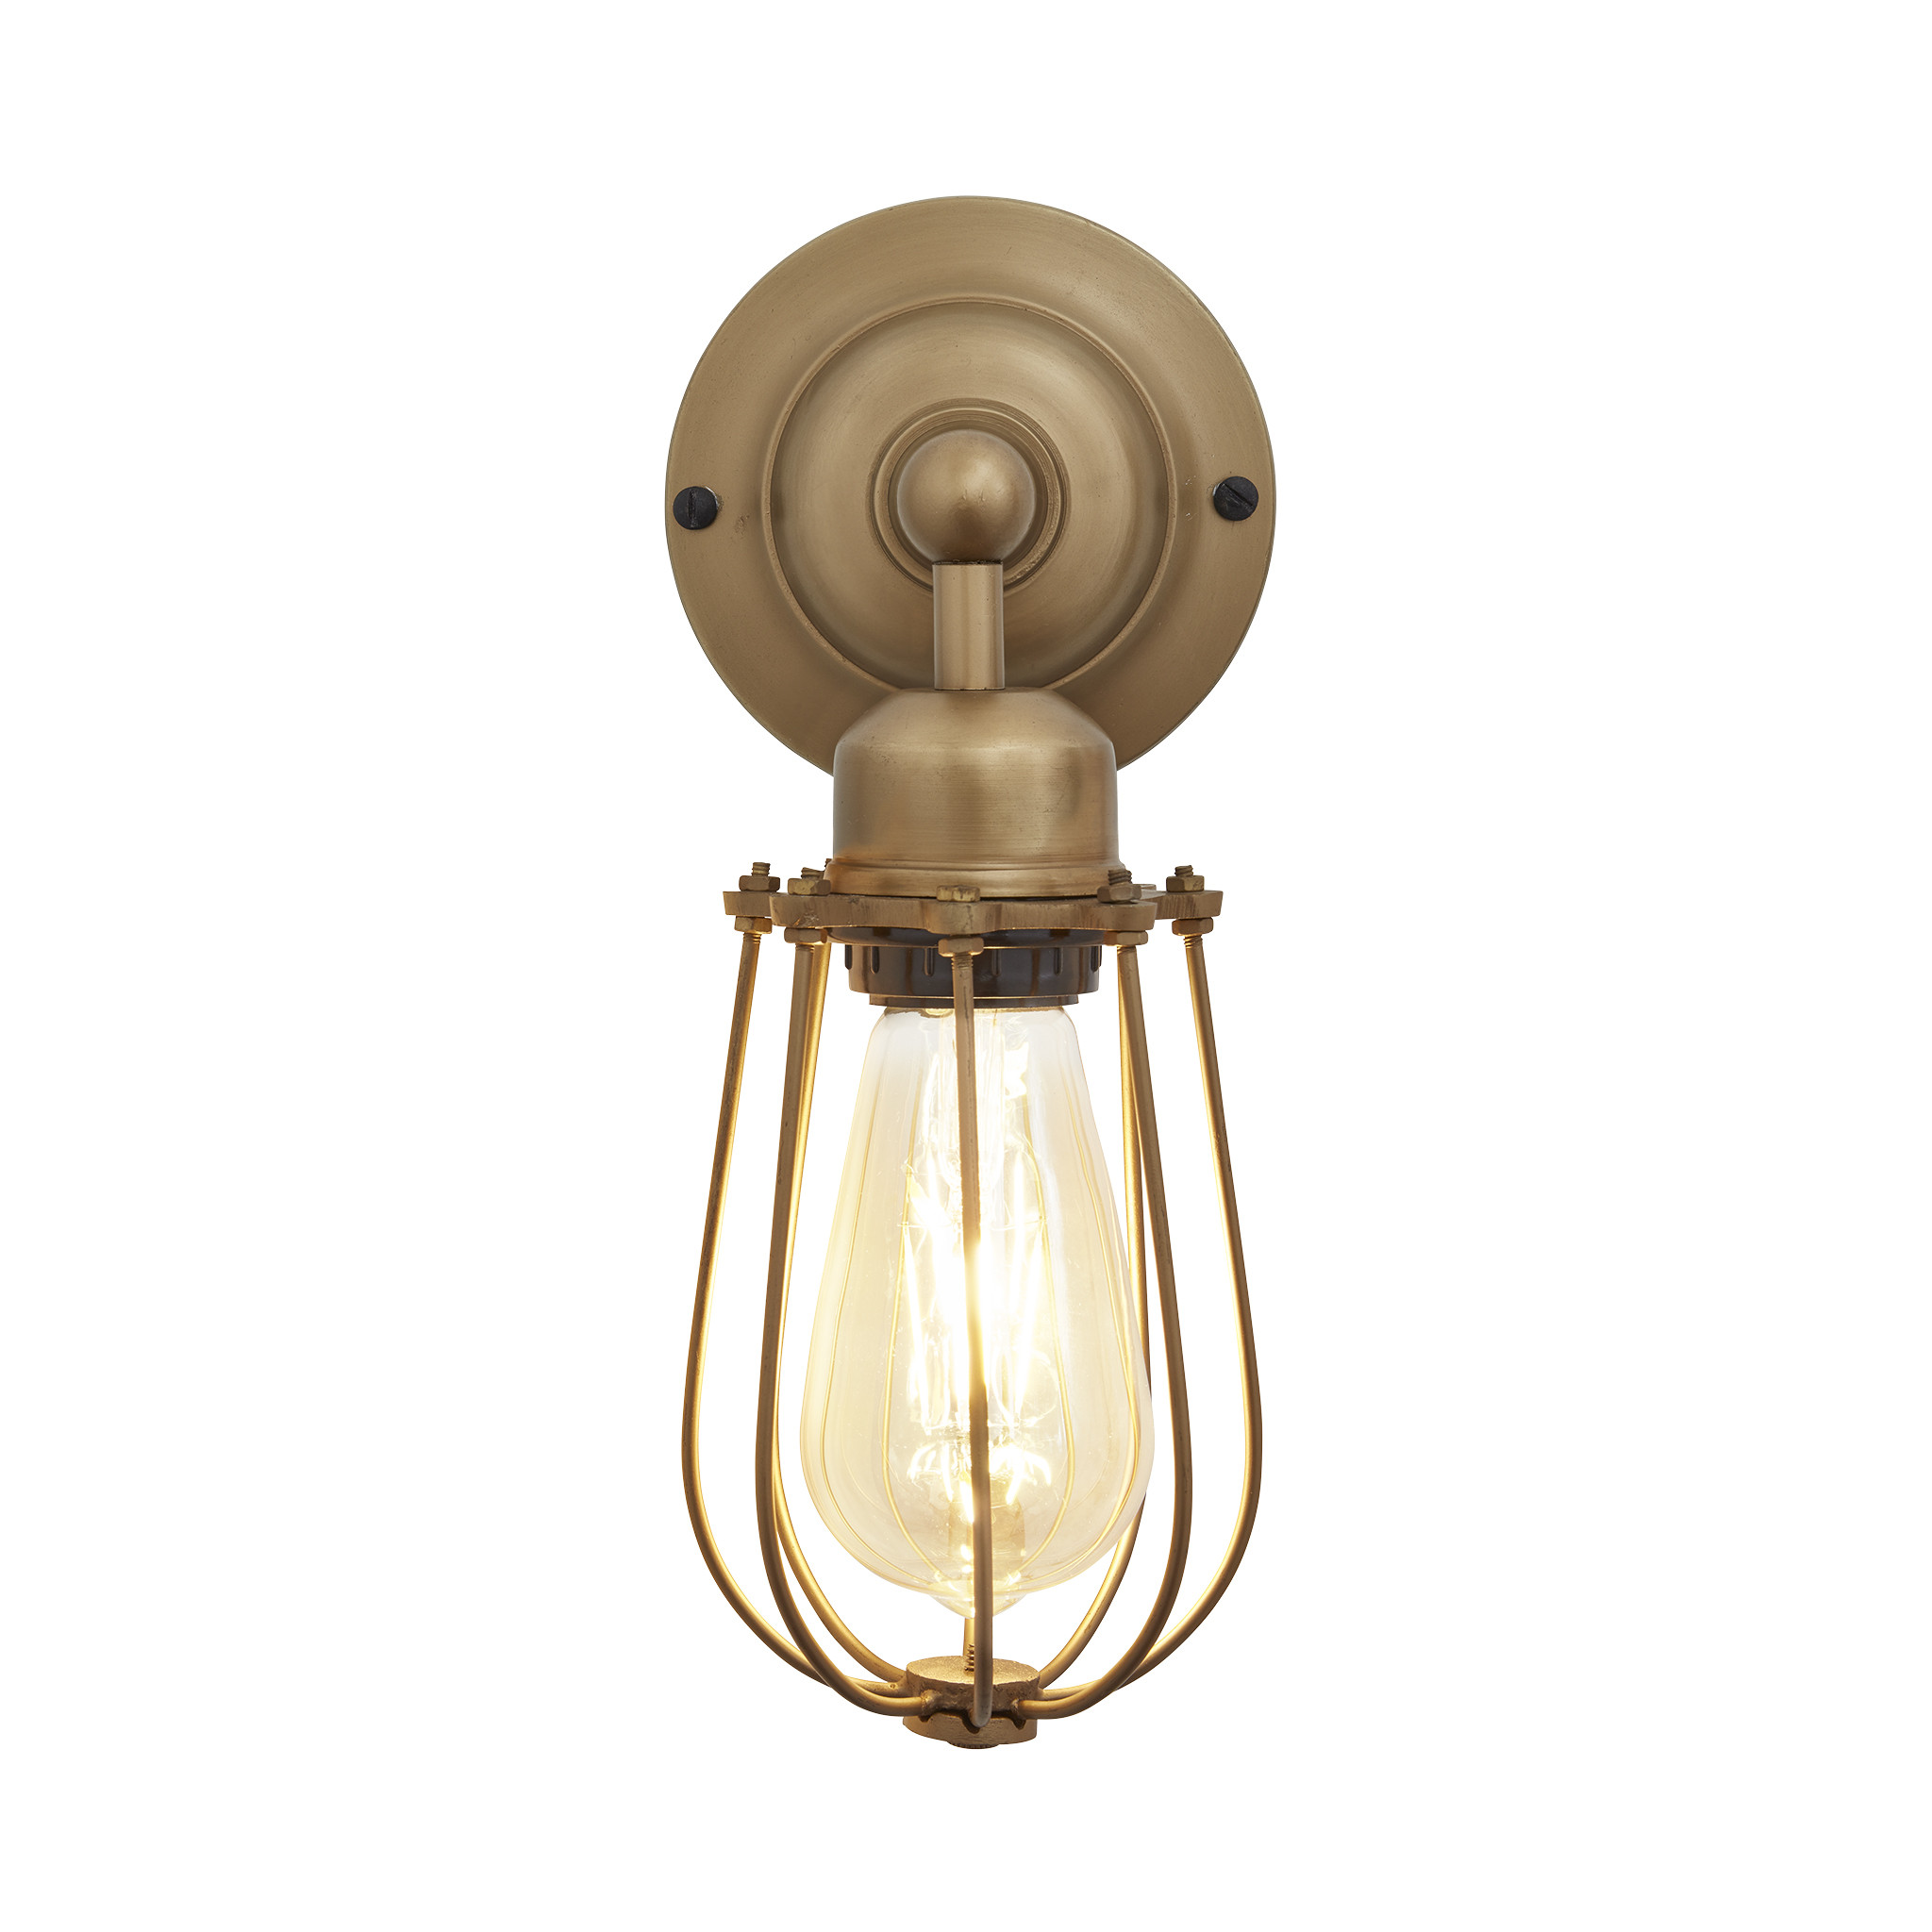 Old Vintage Wall Lights : Antique wall light - 10 ways to transform your home space into a design masterpiece Warisan ...